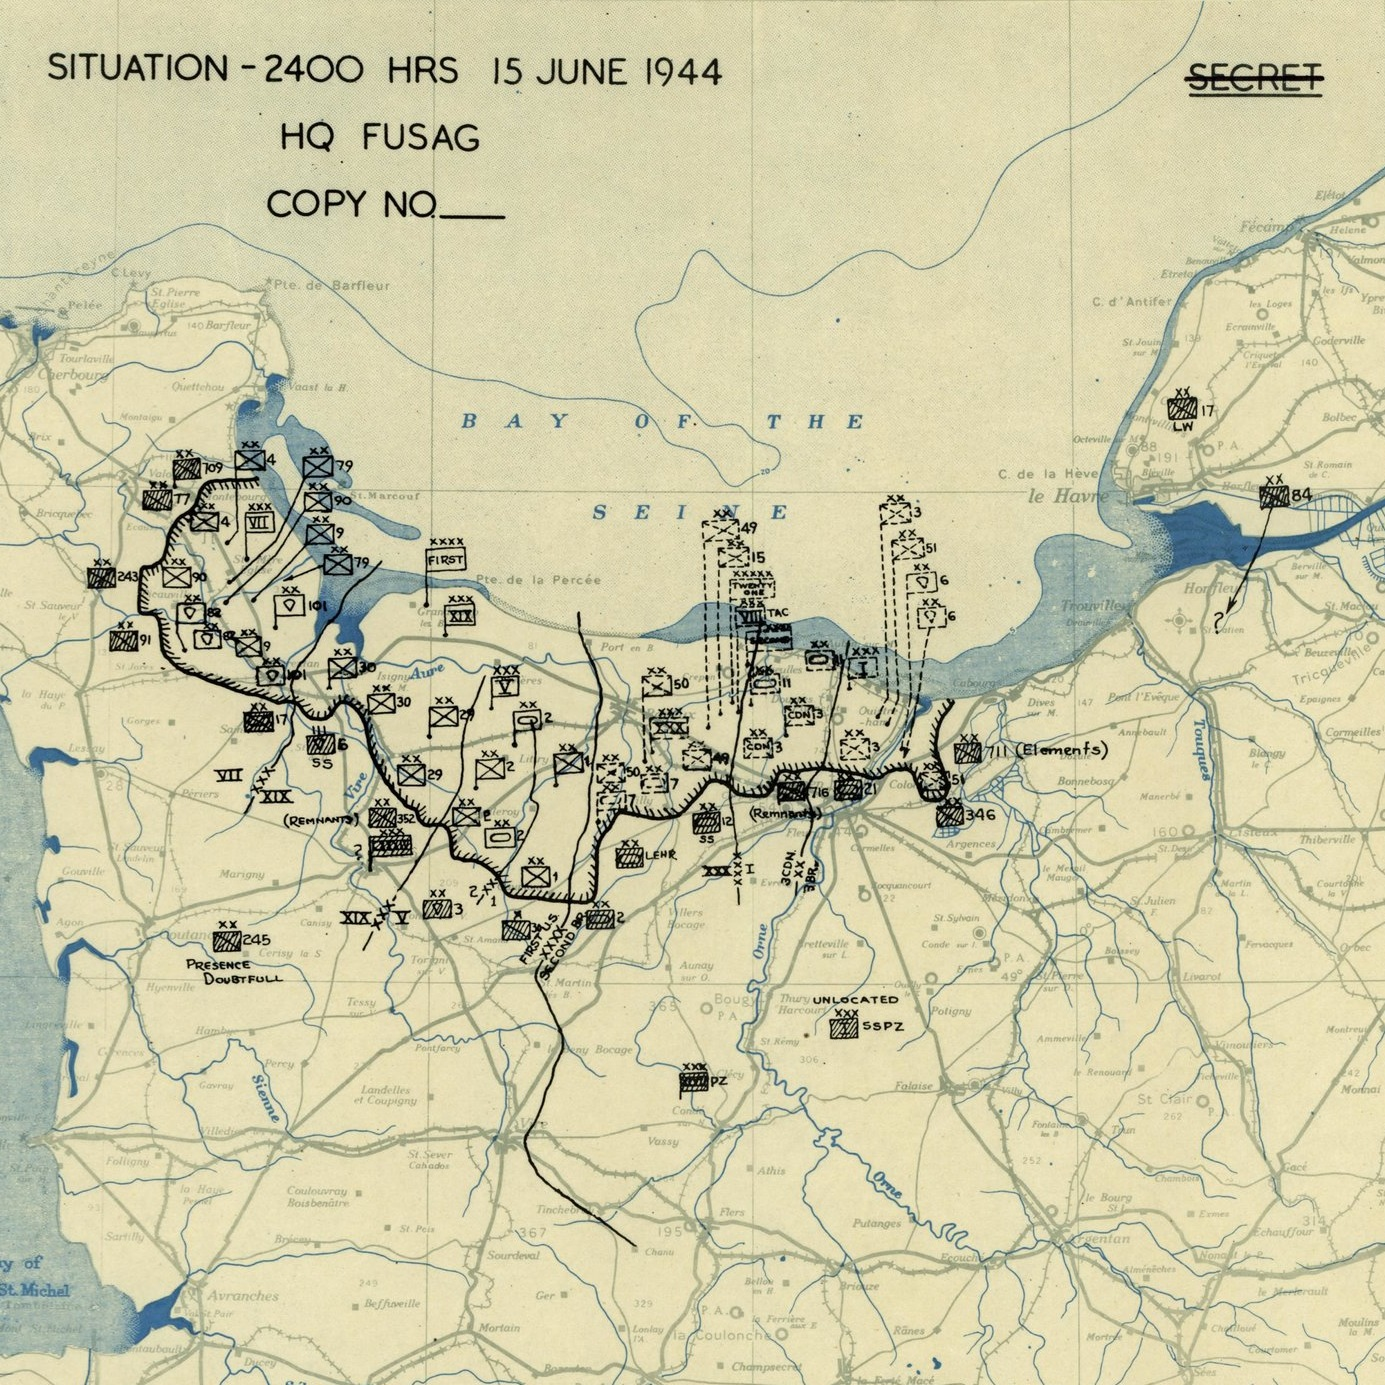 Twelfth Army Group Situation Map 15th of June 1944.